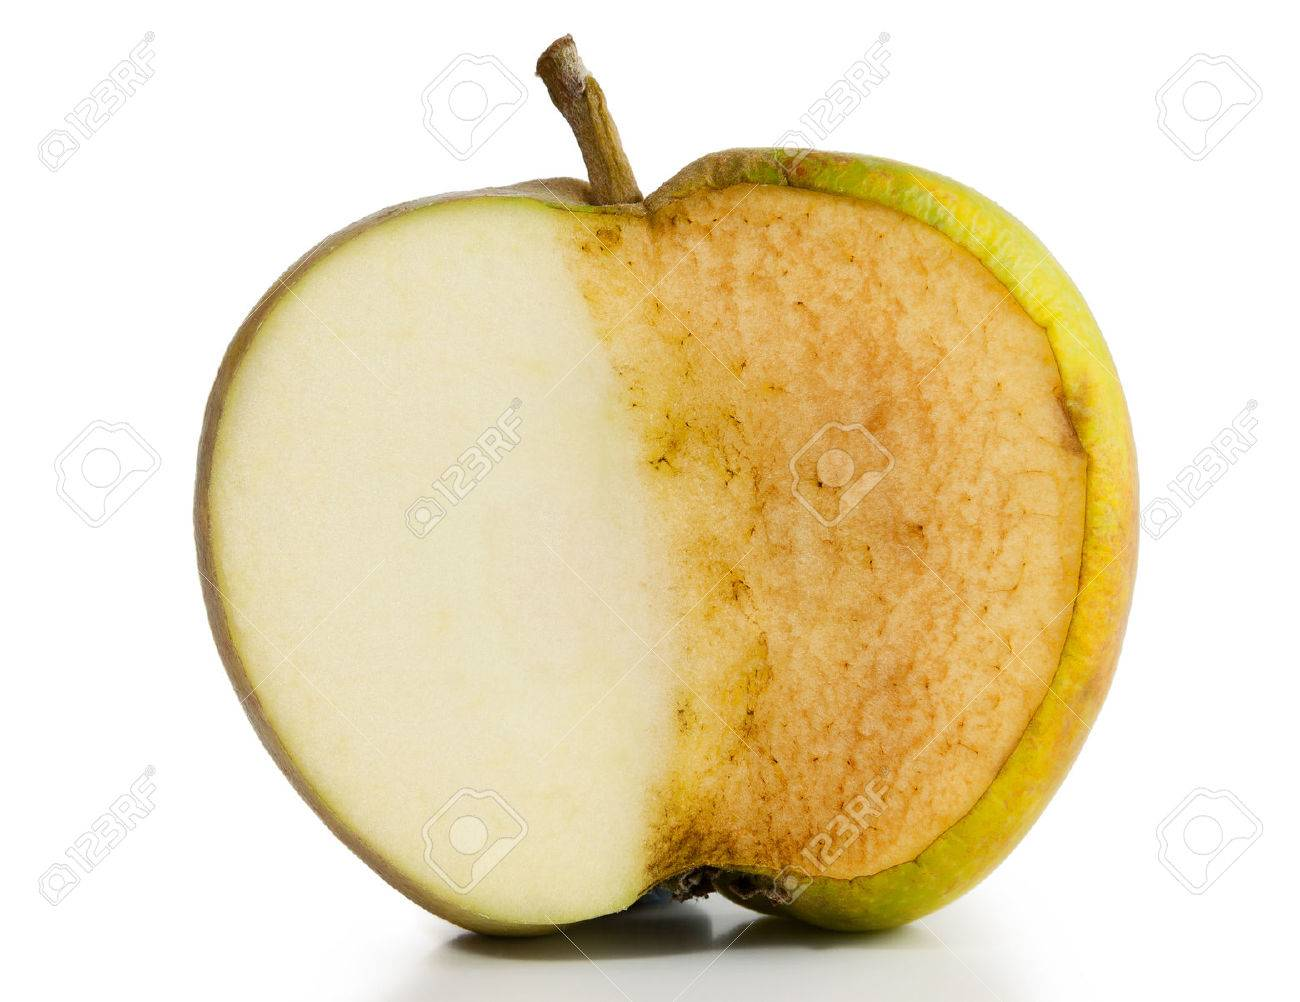 Apple sliced in half  Half fresh and half decayed on white background Stock Photo - 25984062